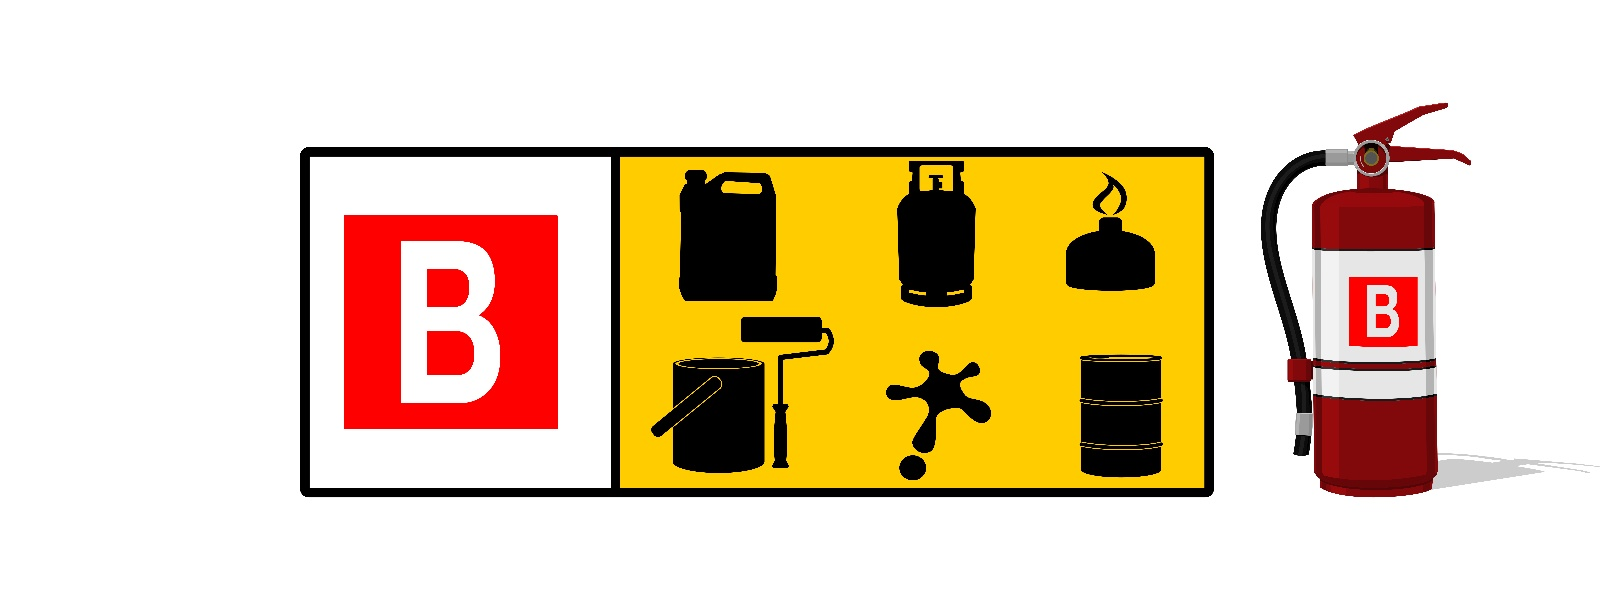 WHAT IS A CLASS B FIRE EXTINGUISHER USED FOR?